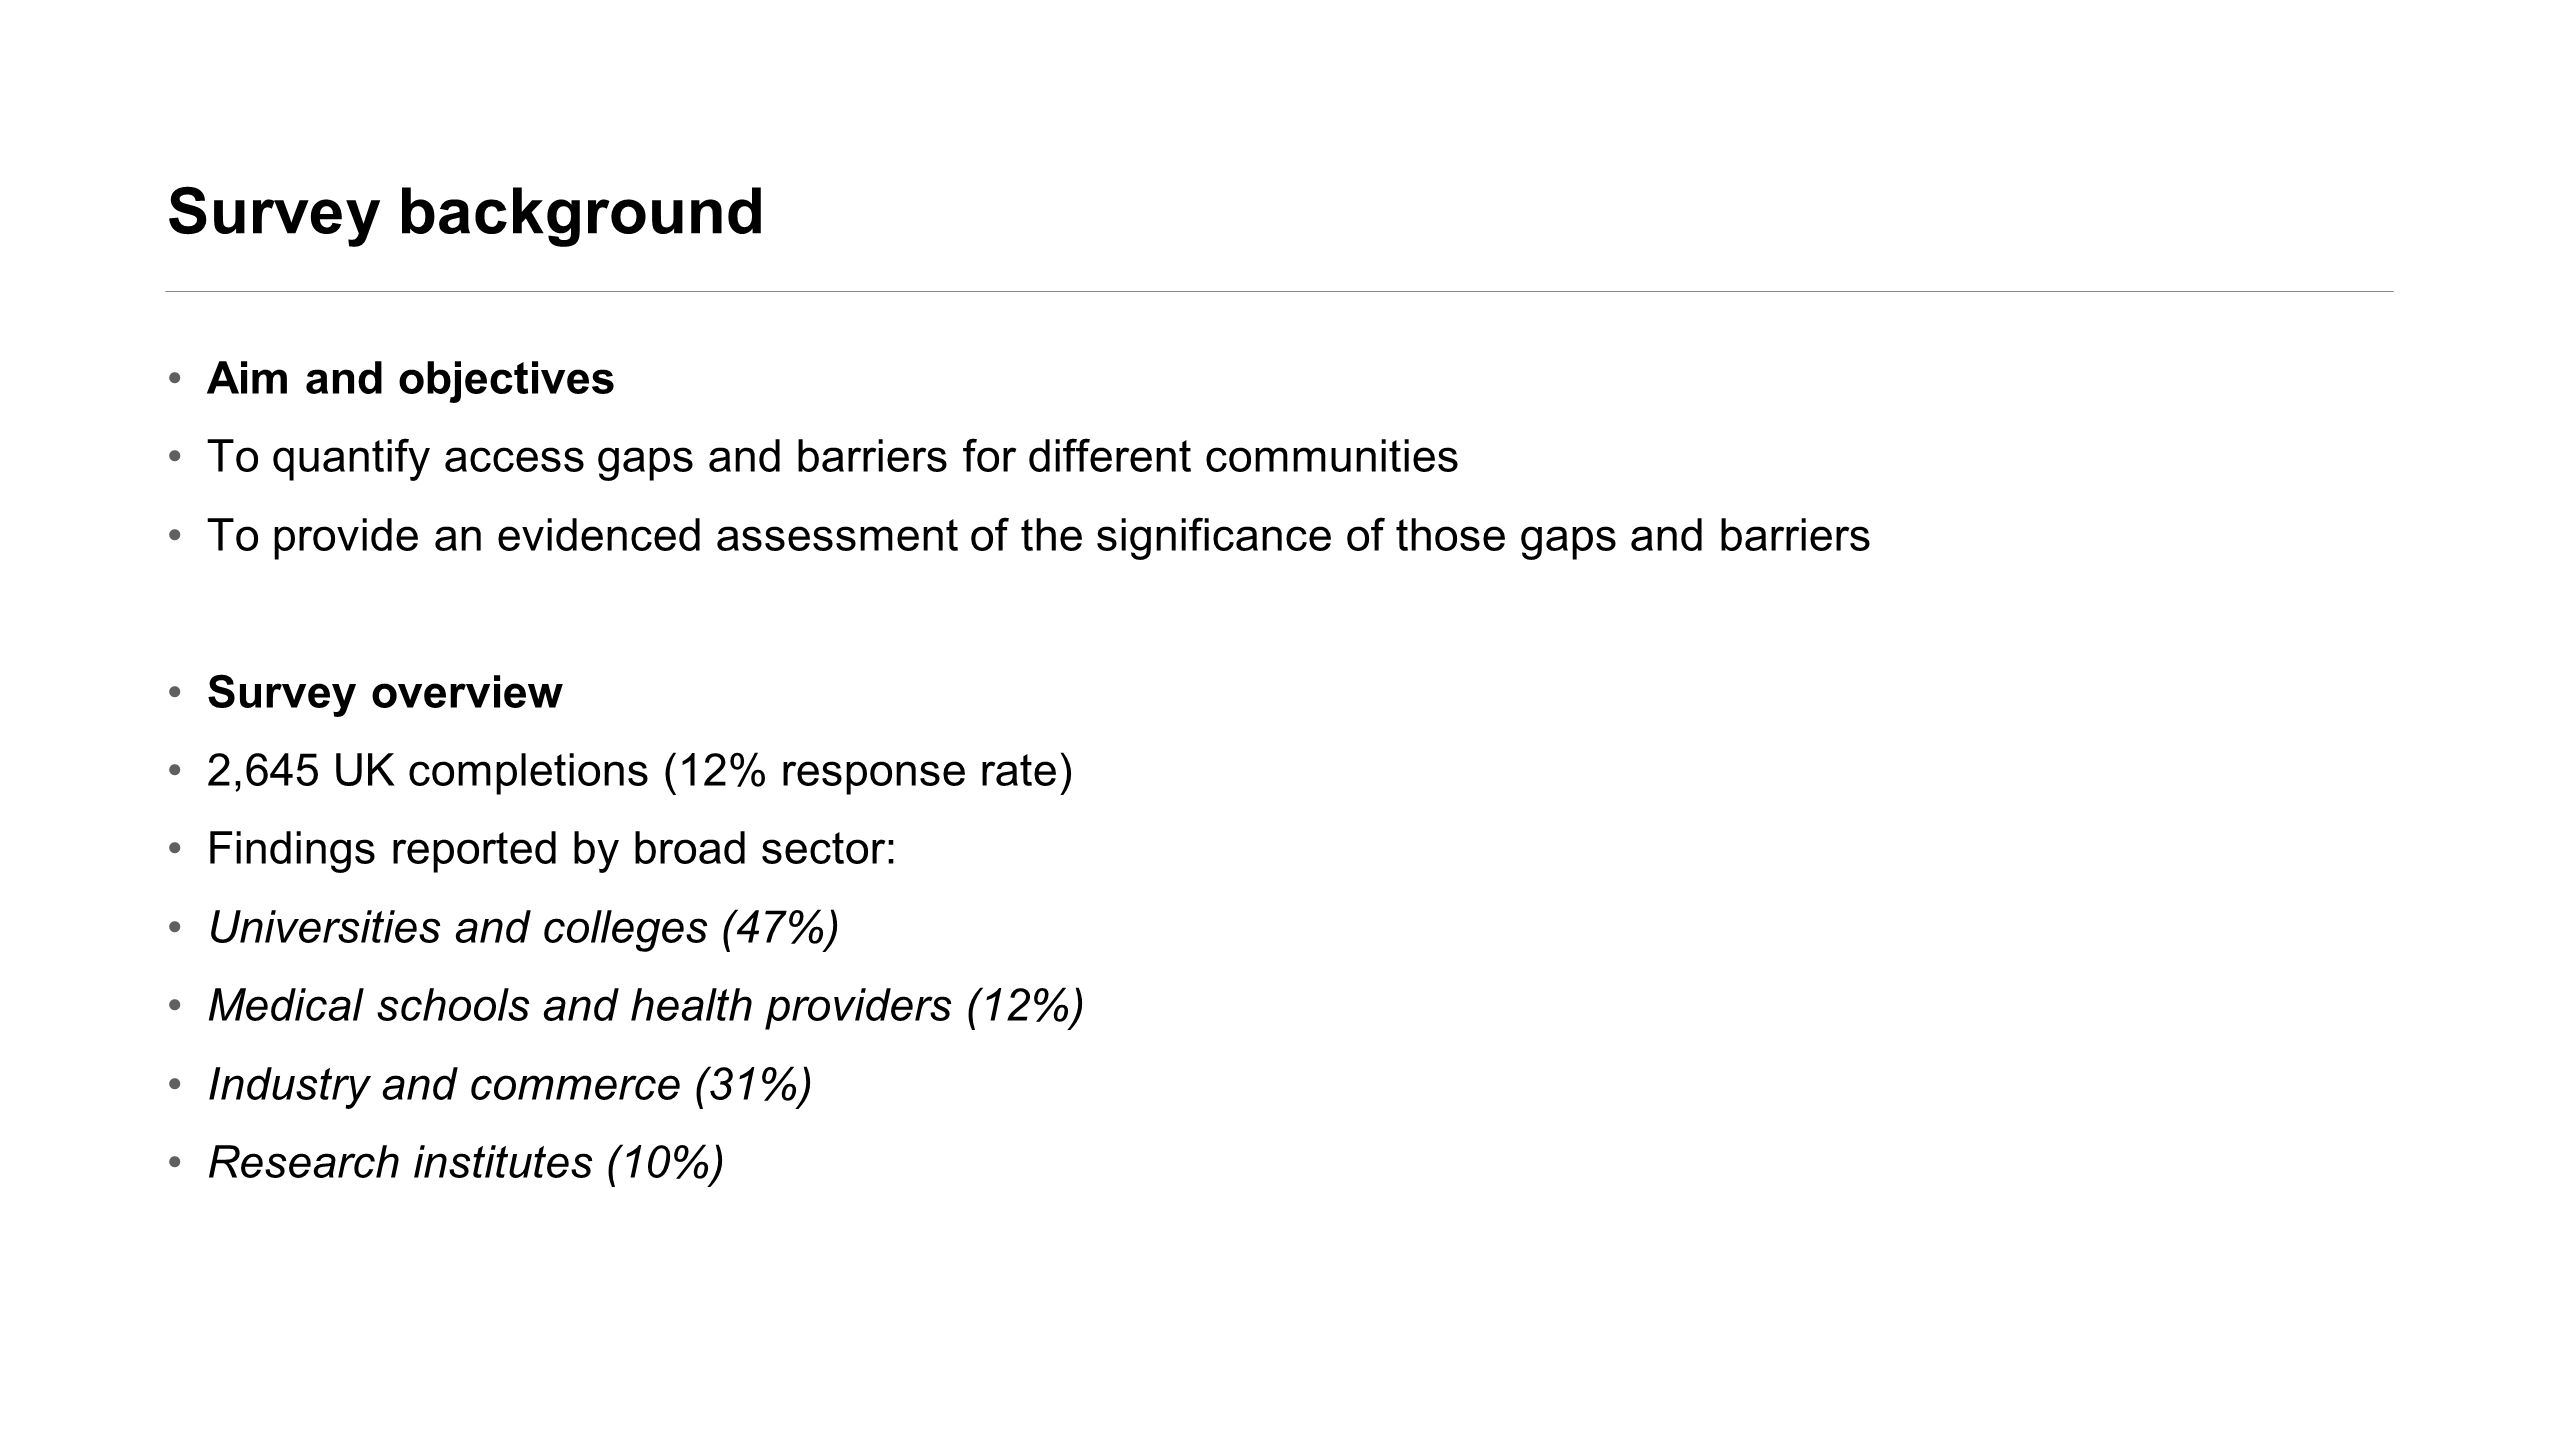 Survey background Aim and objectives To quantify access gaps and barriers for different communities To provide an evidenced assessment of the significance of those gaps and barriers Survey overview 2,645 UK completions (12% response rate) Findings reported by broad sector: Universities and colleges (47%) Medical schools and health providers (12%) Industry and commerce (31%) Research institutes (10%)